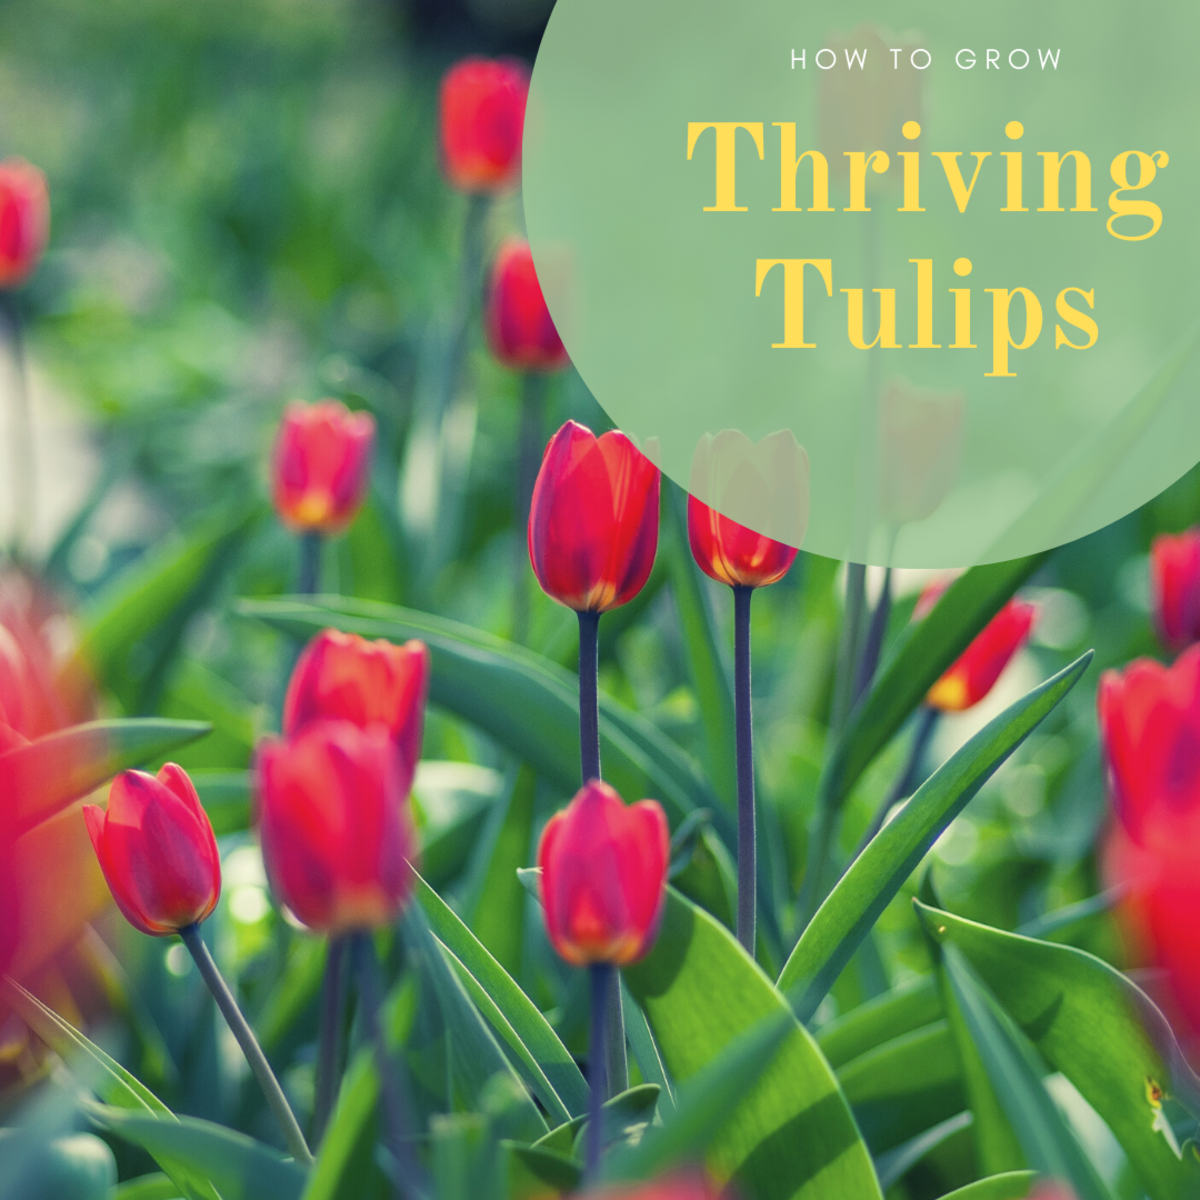 Learn how to successfully grow tulips on your own!